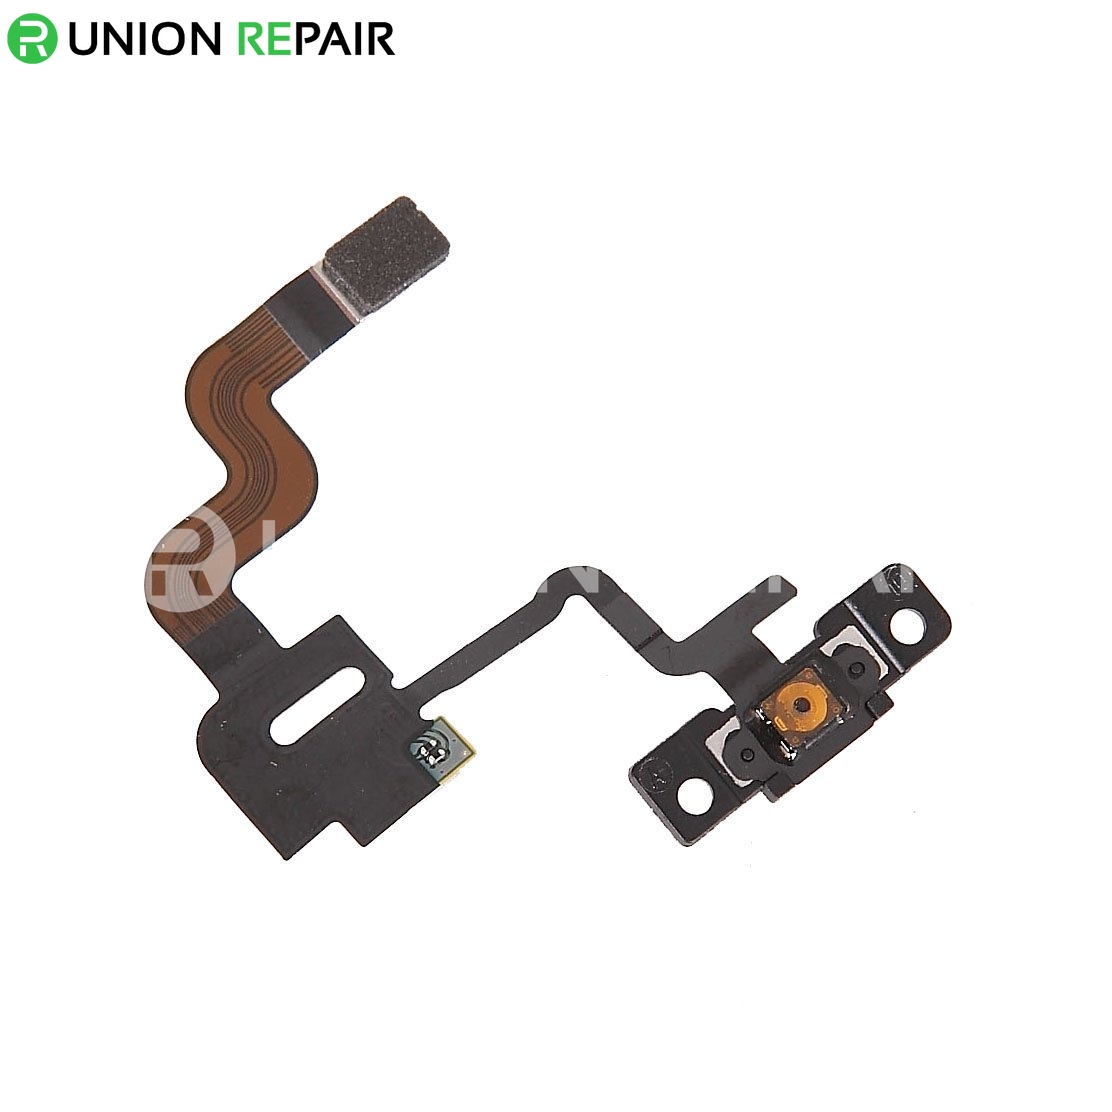 Cdma Iphone 4 Proximity Sensor Cable : Replacement for iphone cdma ambient light sensor flex cable